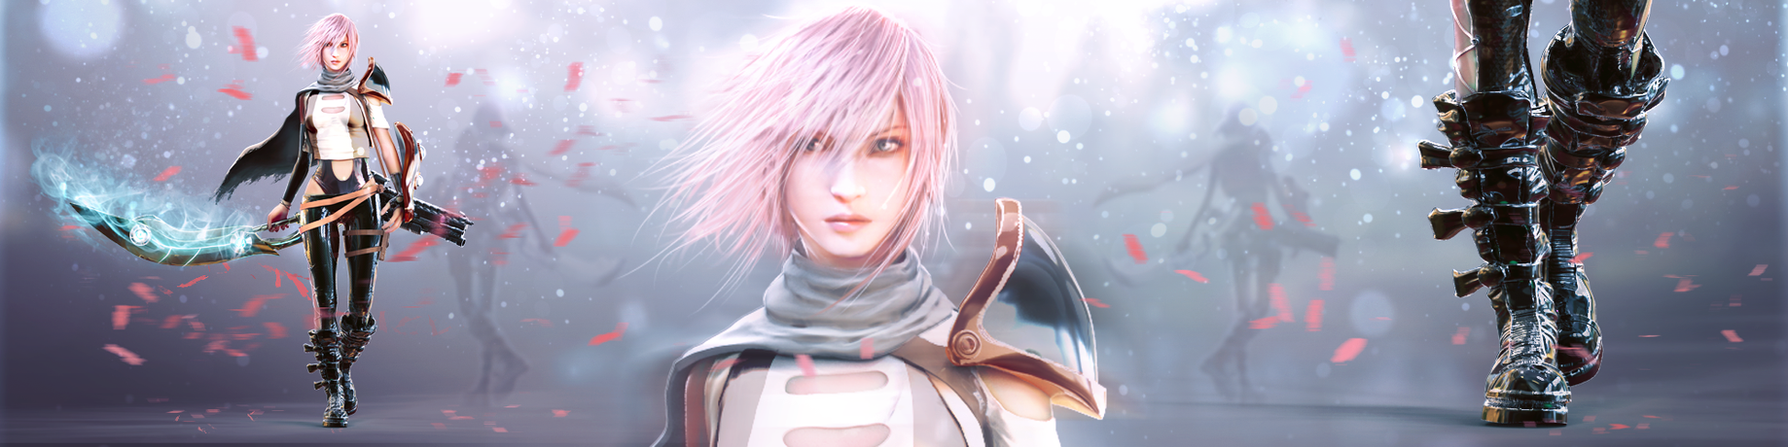 Lightning Returns by s0r3nGZV